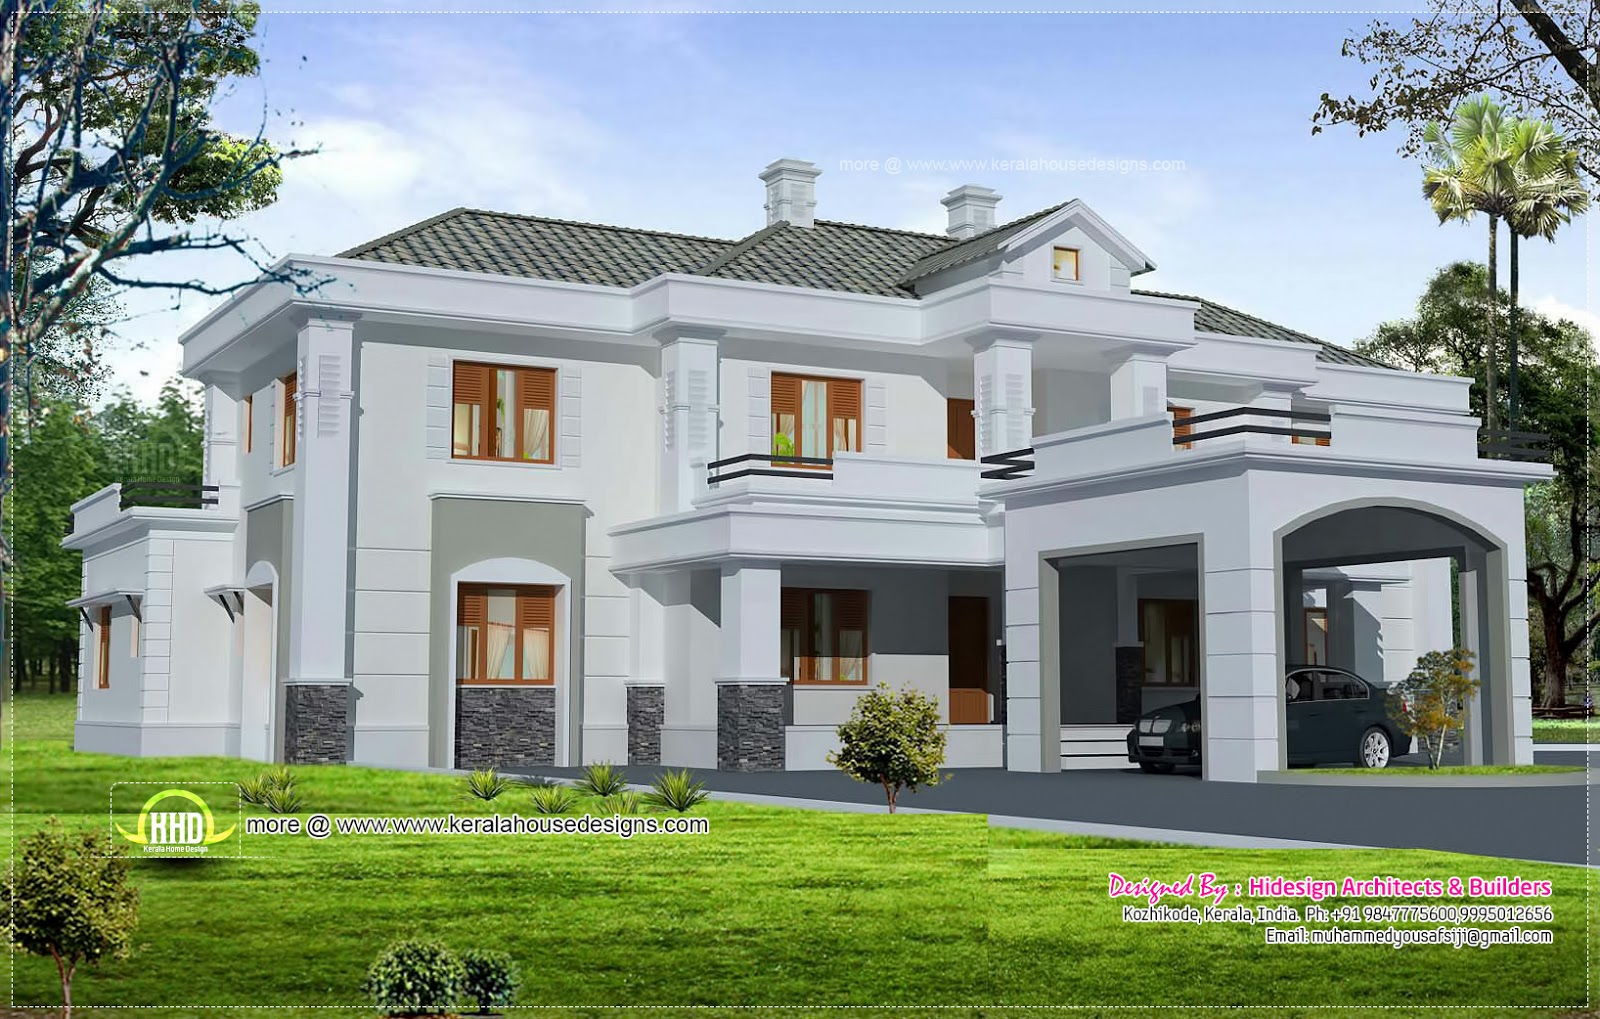 Luxury colonial style home design with court yard kerala for Colonial style home design in kerala